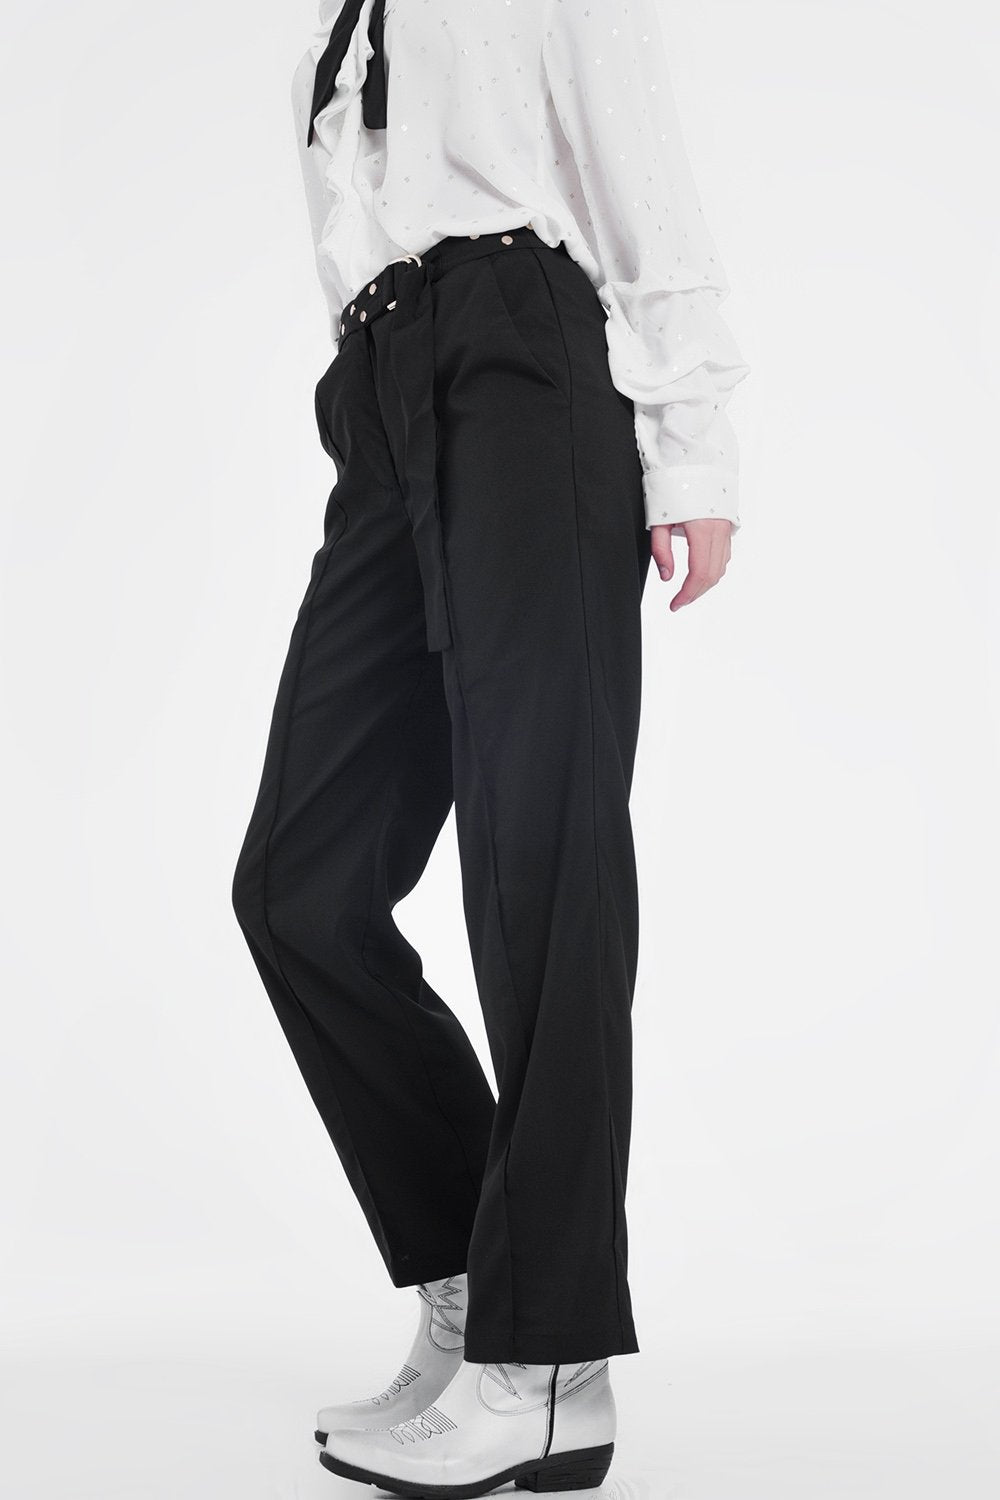 Black Pants With Wide Legs and Low Hem - KATANA FASHION BOUTIQUE